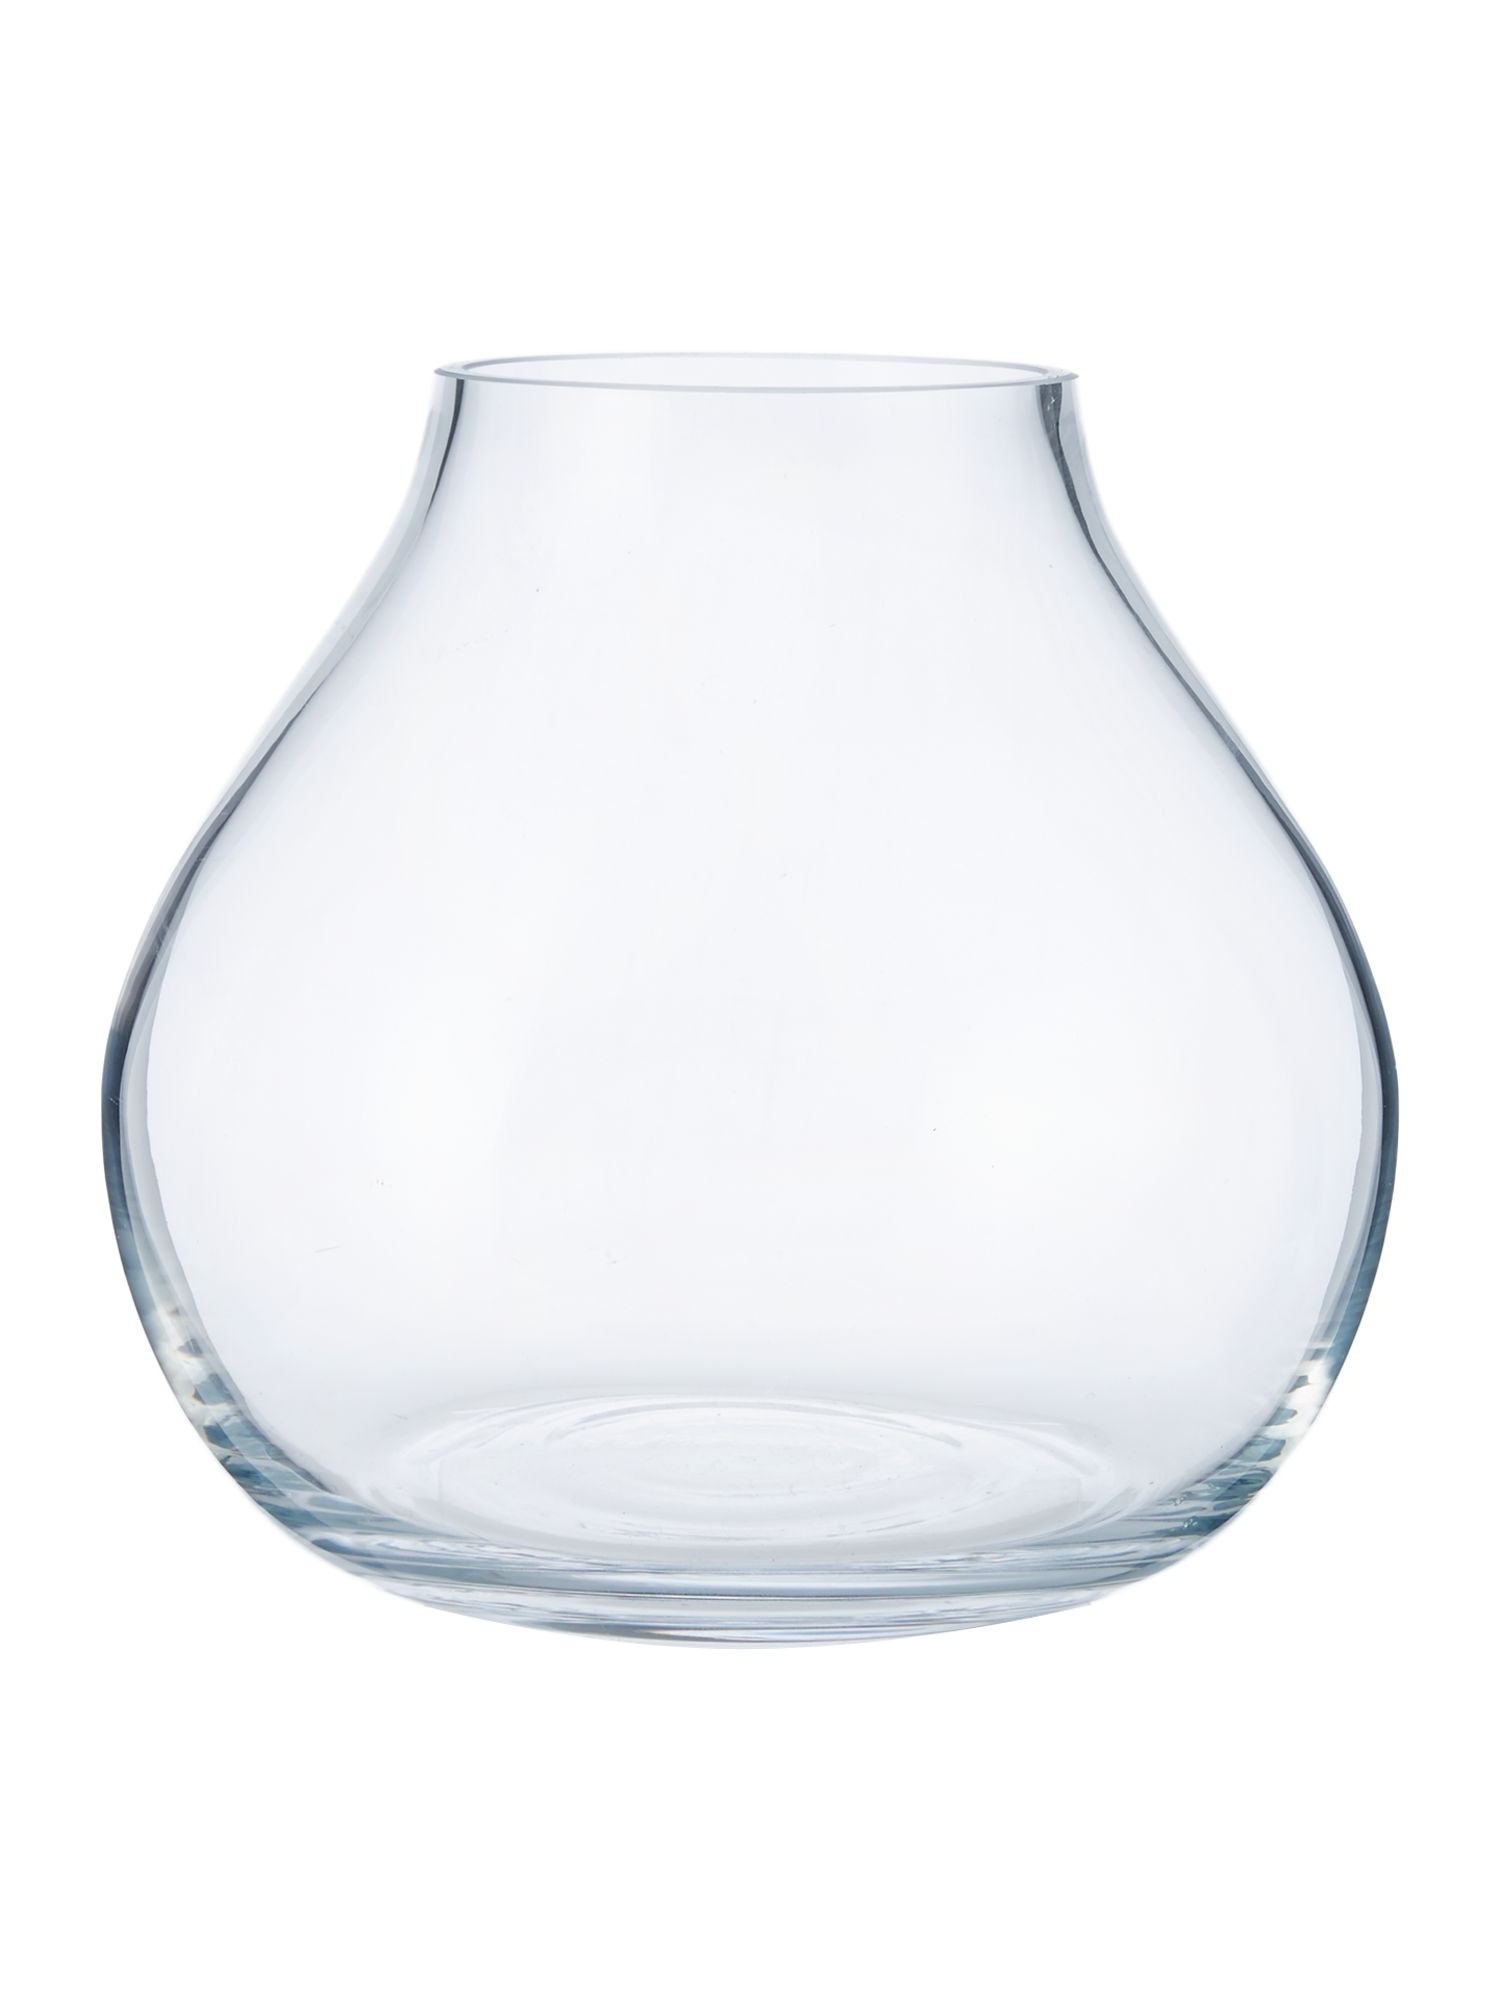 Vases decor at home bluewater reviewsmspy